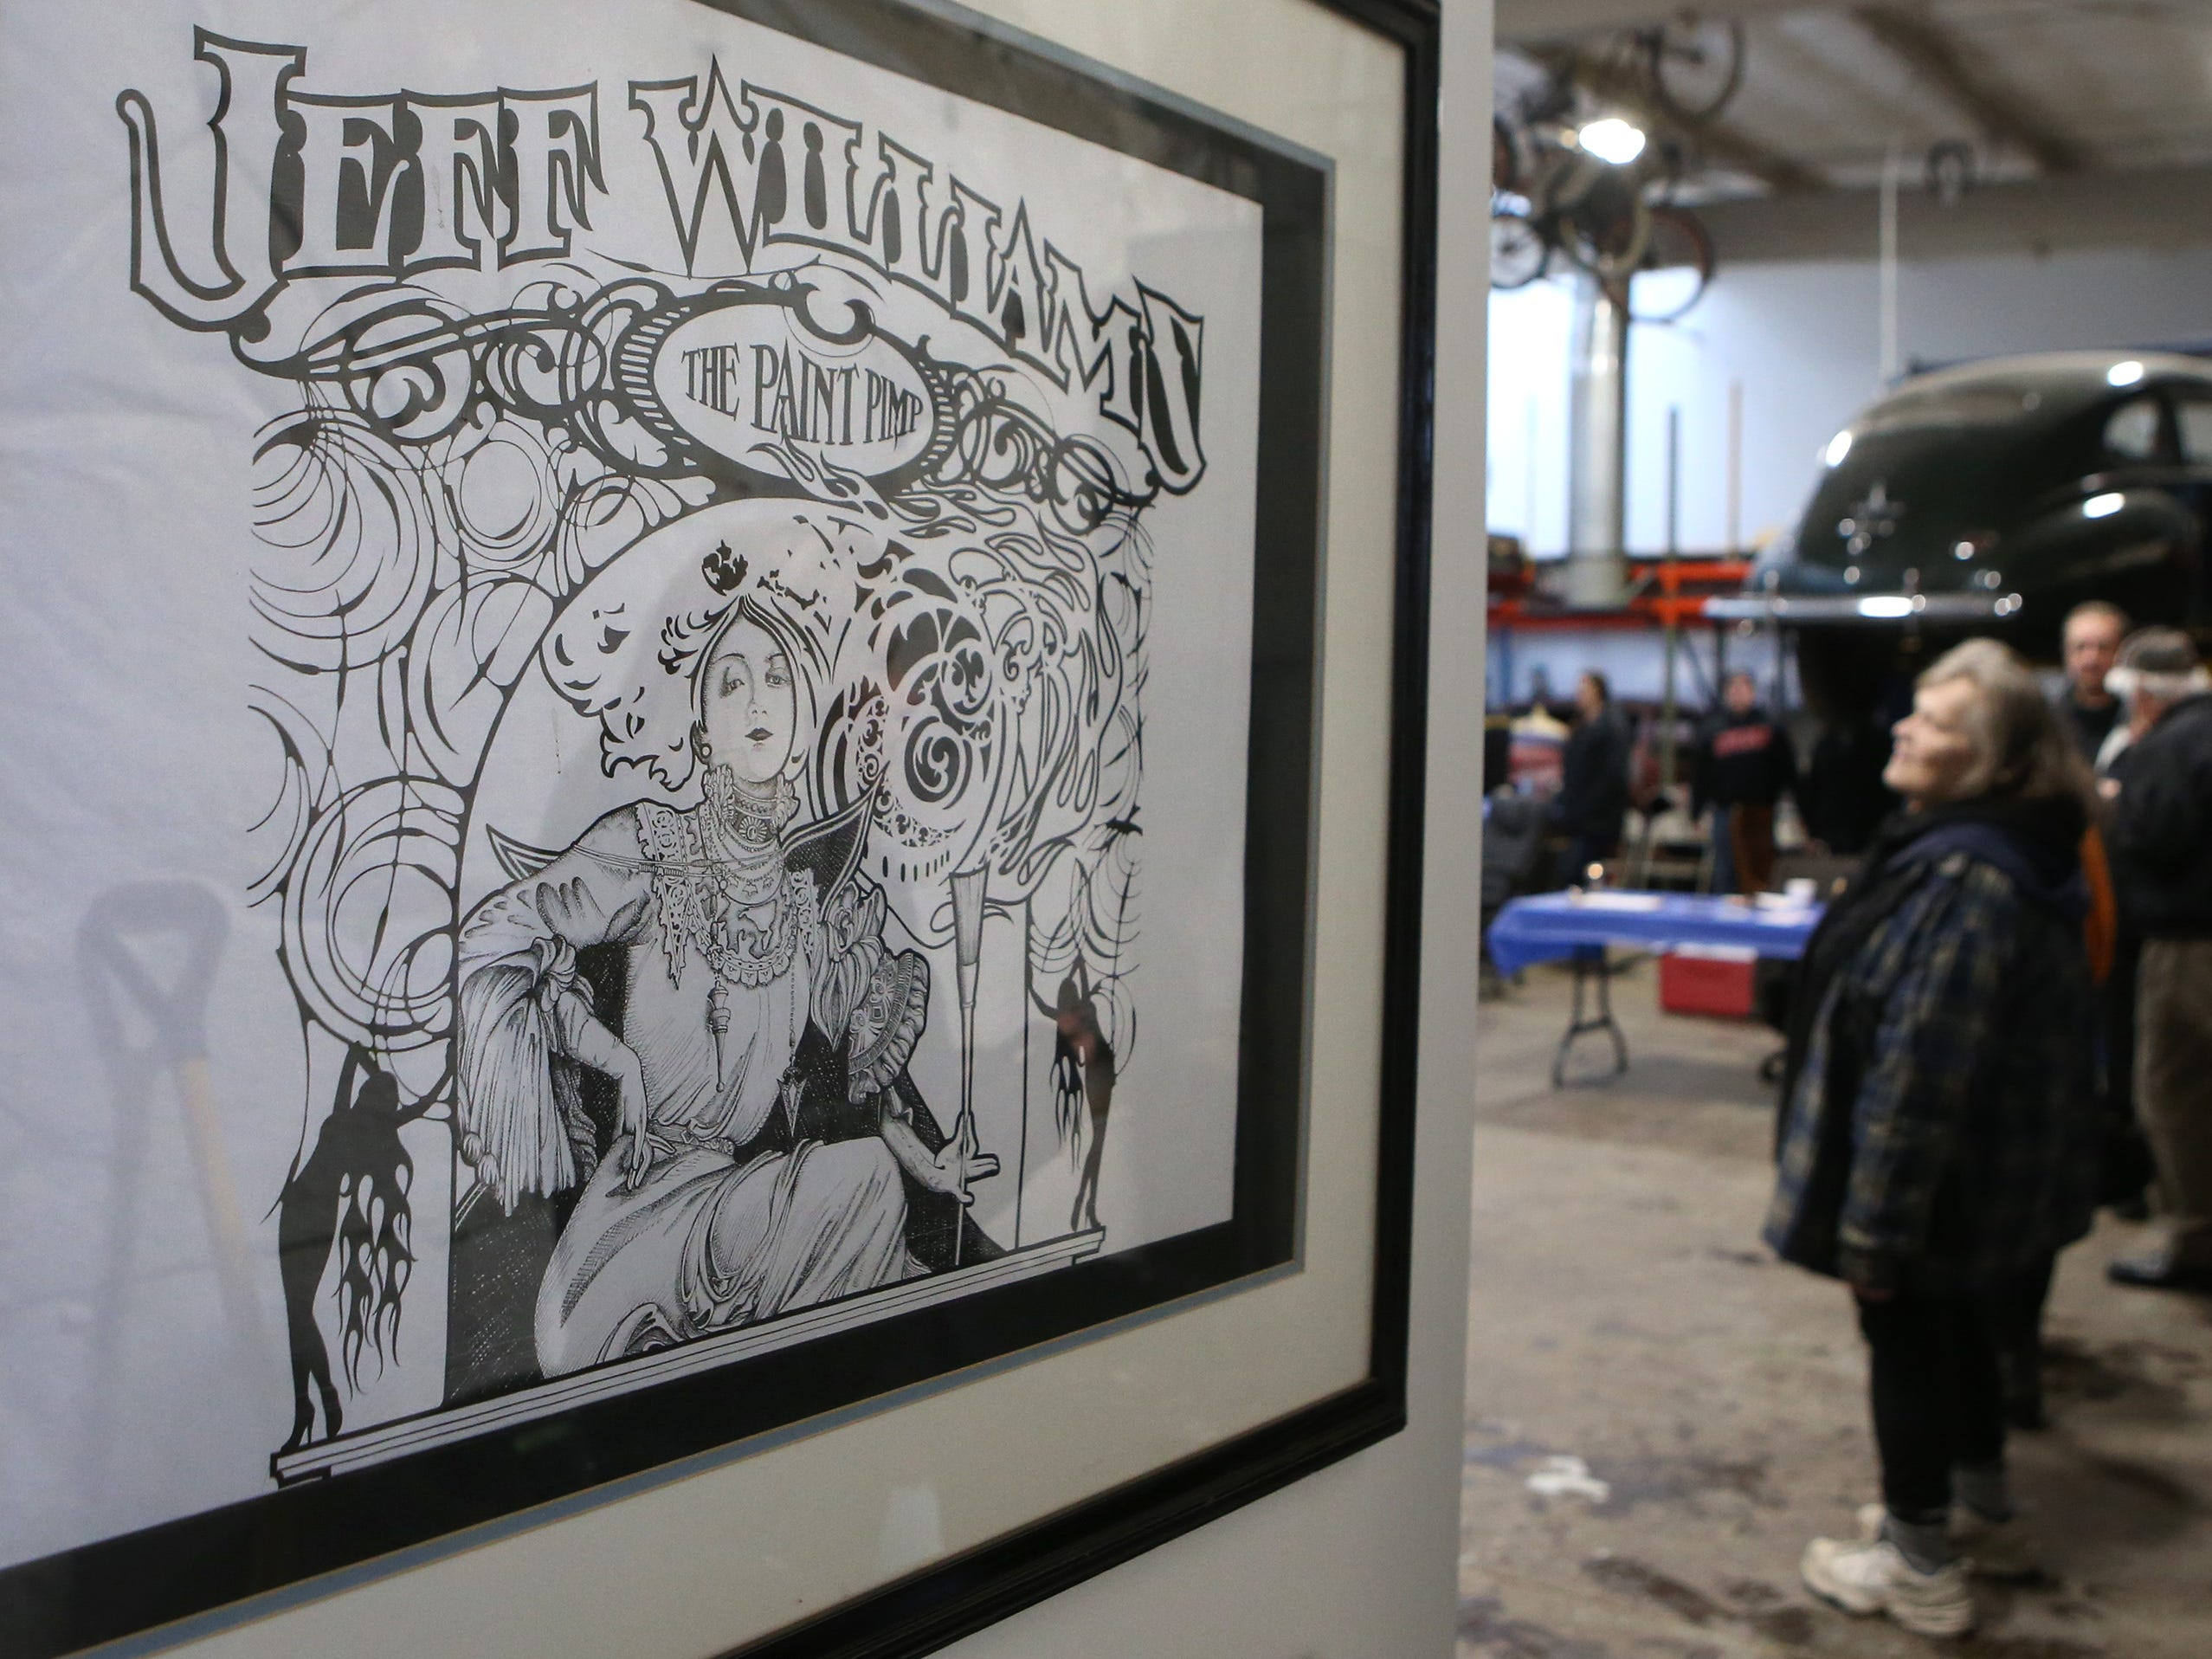 Artwork by Jeff Williams, sign painter and owner of The King of Paint, on display during an open house at the King of Paint shop in St. Francis on Jan. 19.